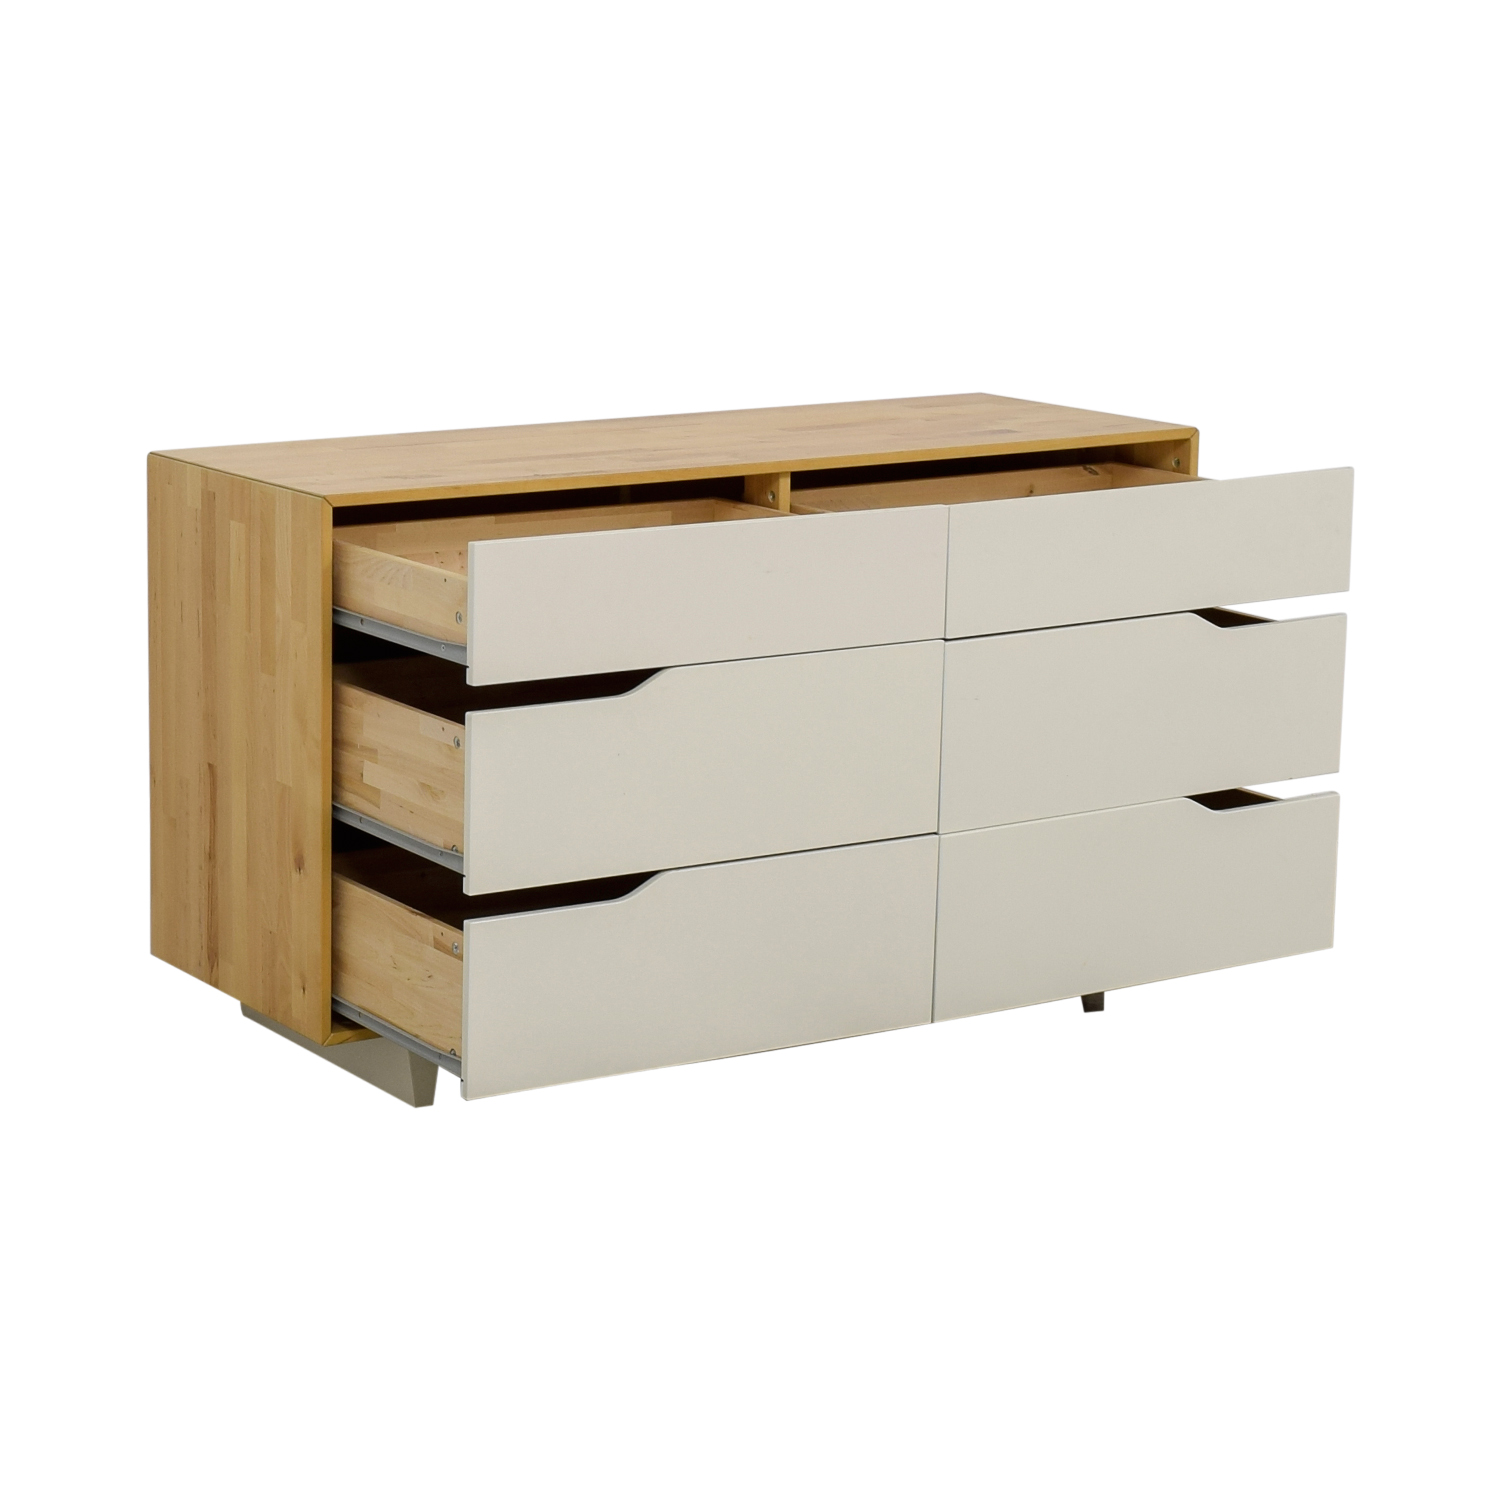 51 OFF  IKEA IKEA Mandal White and Natural SixDrawer Dresser  Storage